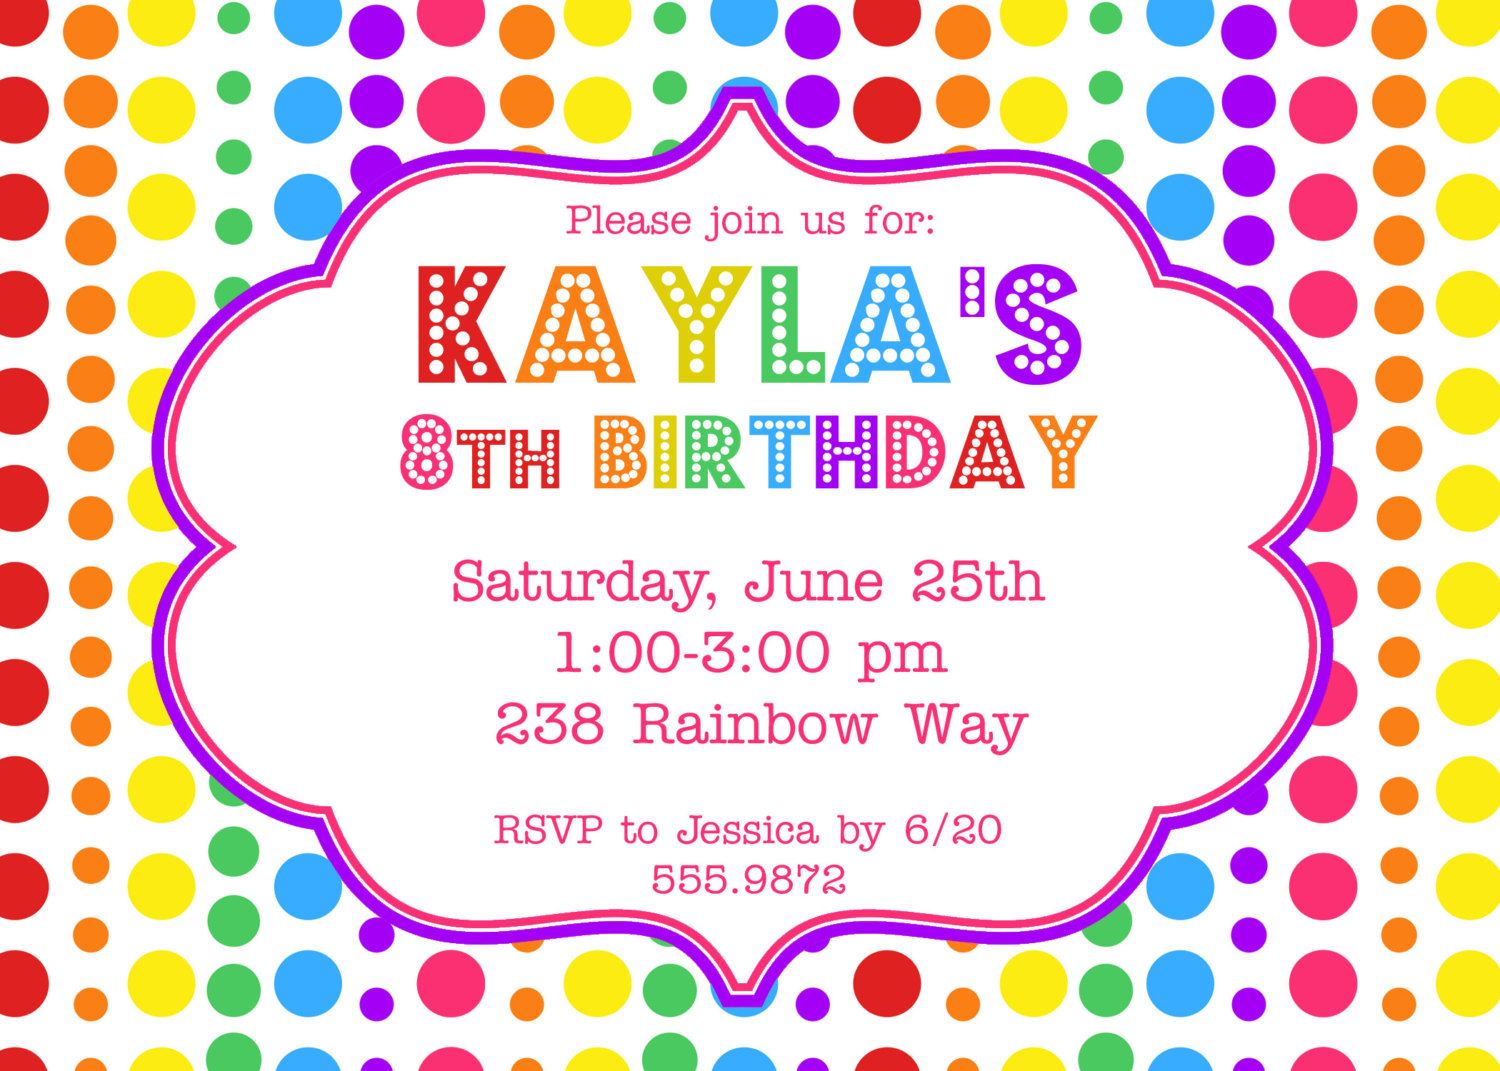 happy birthday party invitation ; Birthday-party-invitations-and-get-inspiration-to-create-the-party-invitation-design-of-your-dreams-1